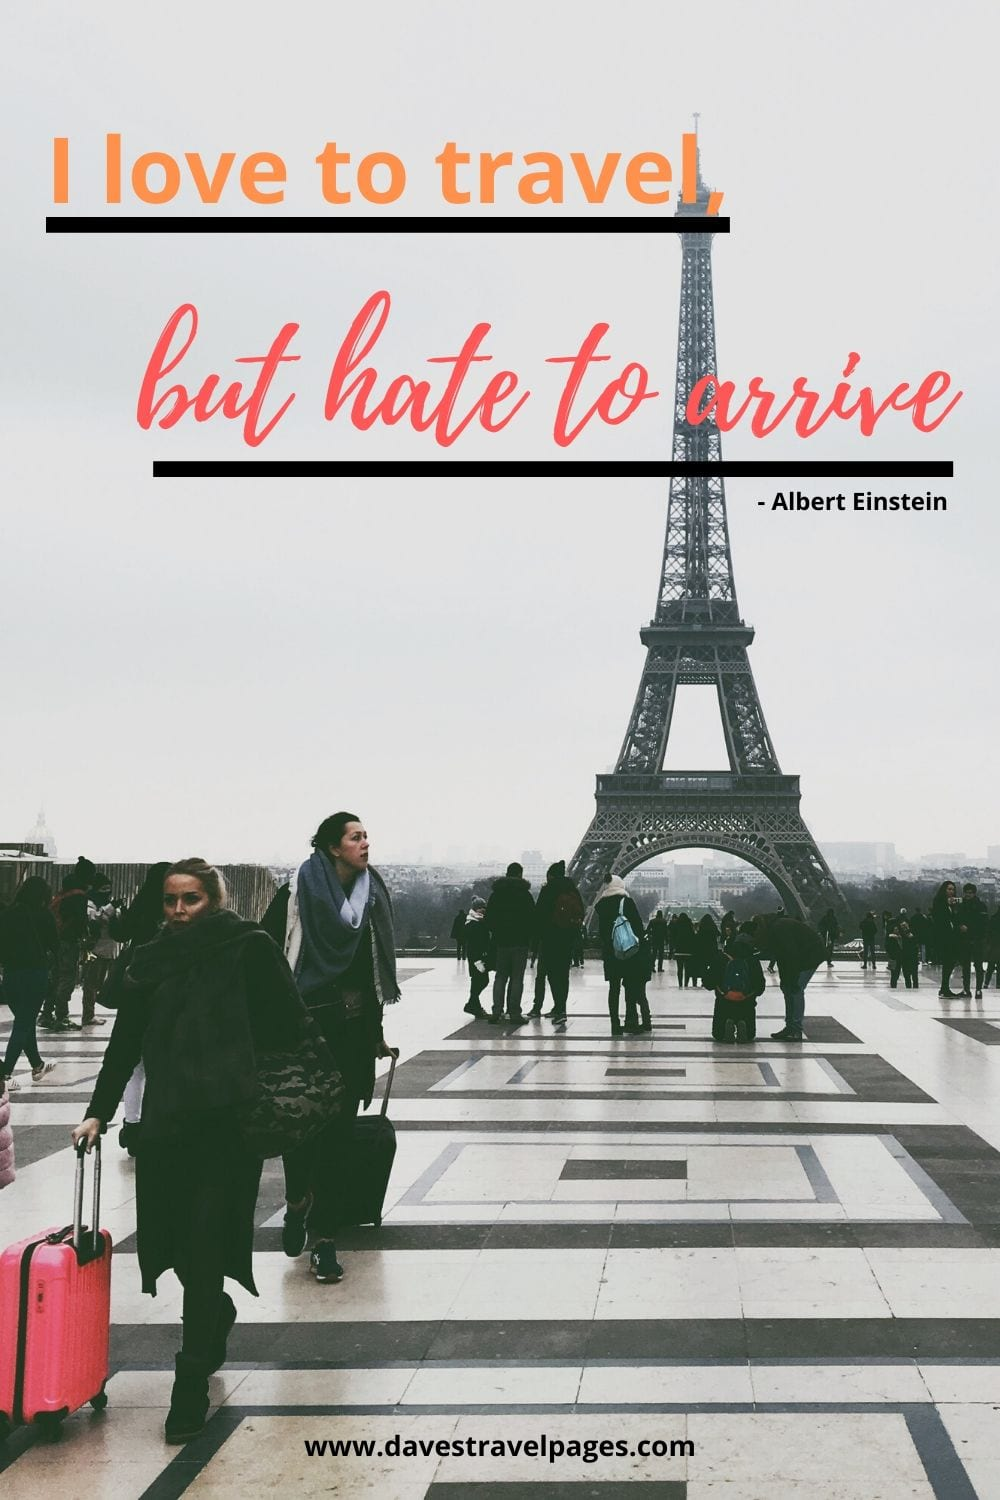 Famous travel quote: I love to travel, but hate to arrive. Albert Einstein